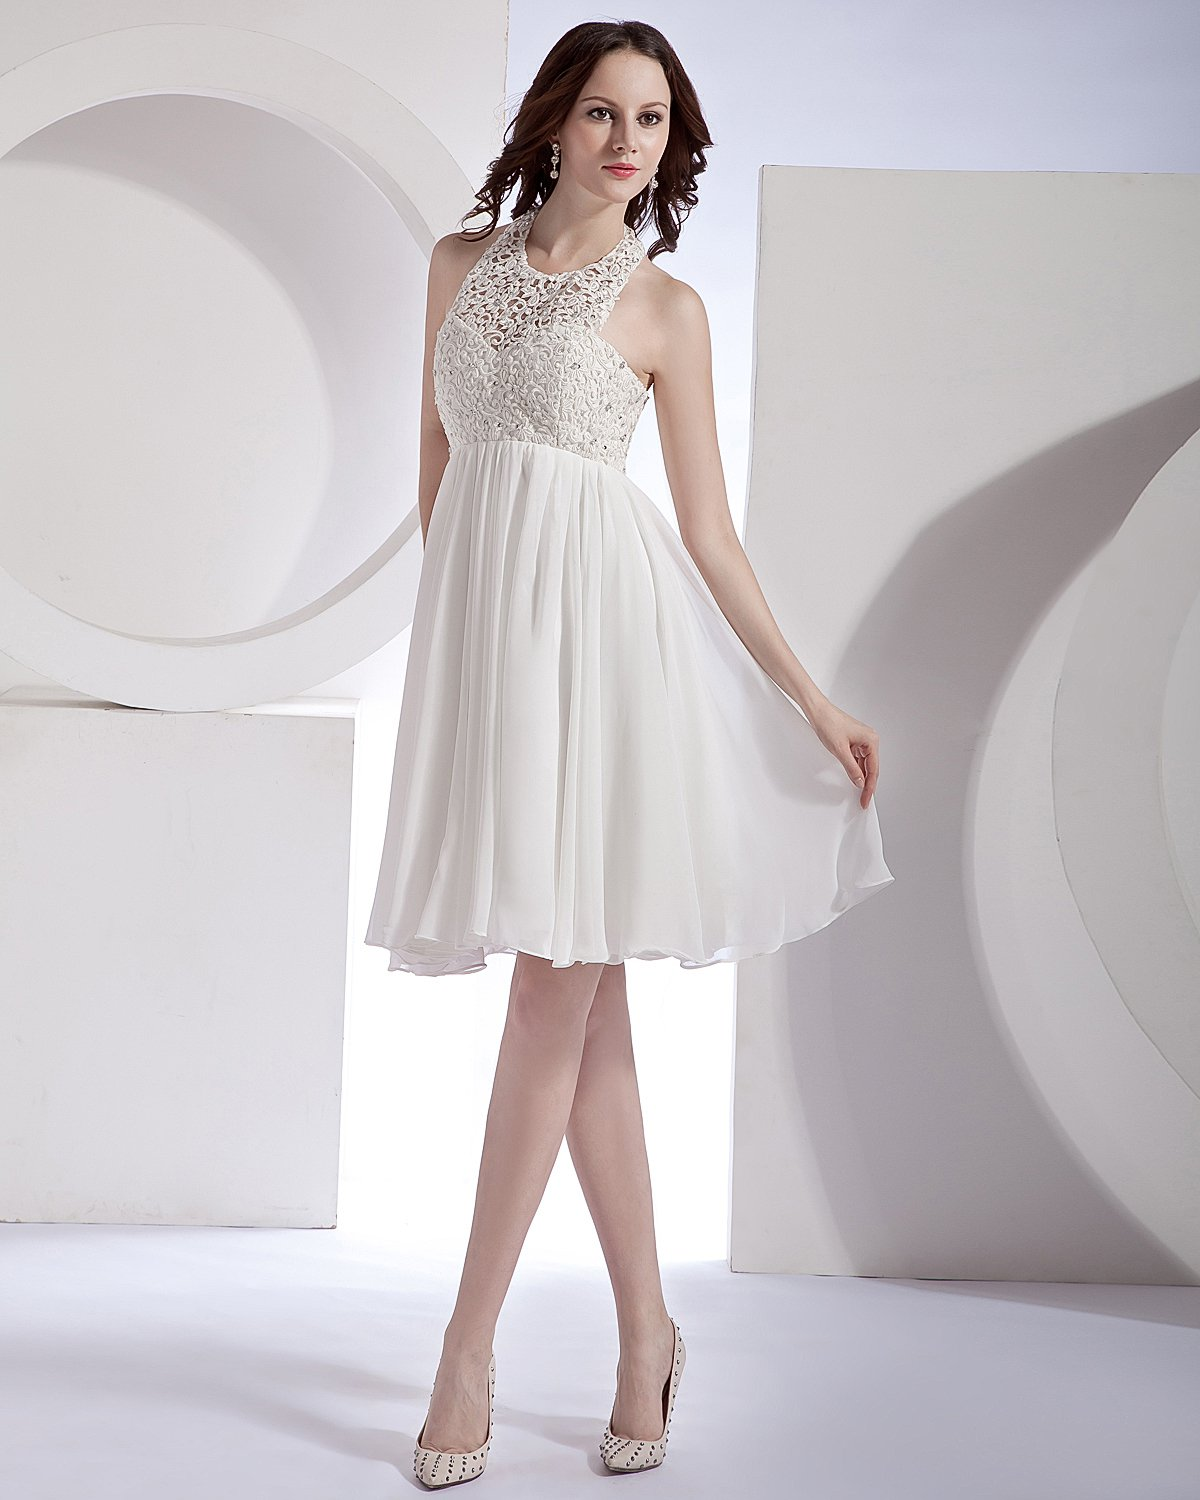 Hollow-Out Organza Chiffon Lace Halter Mini Bridal Gown Wedding Dress